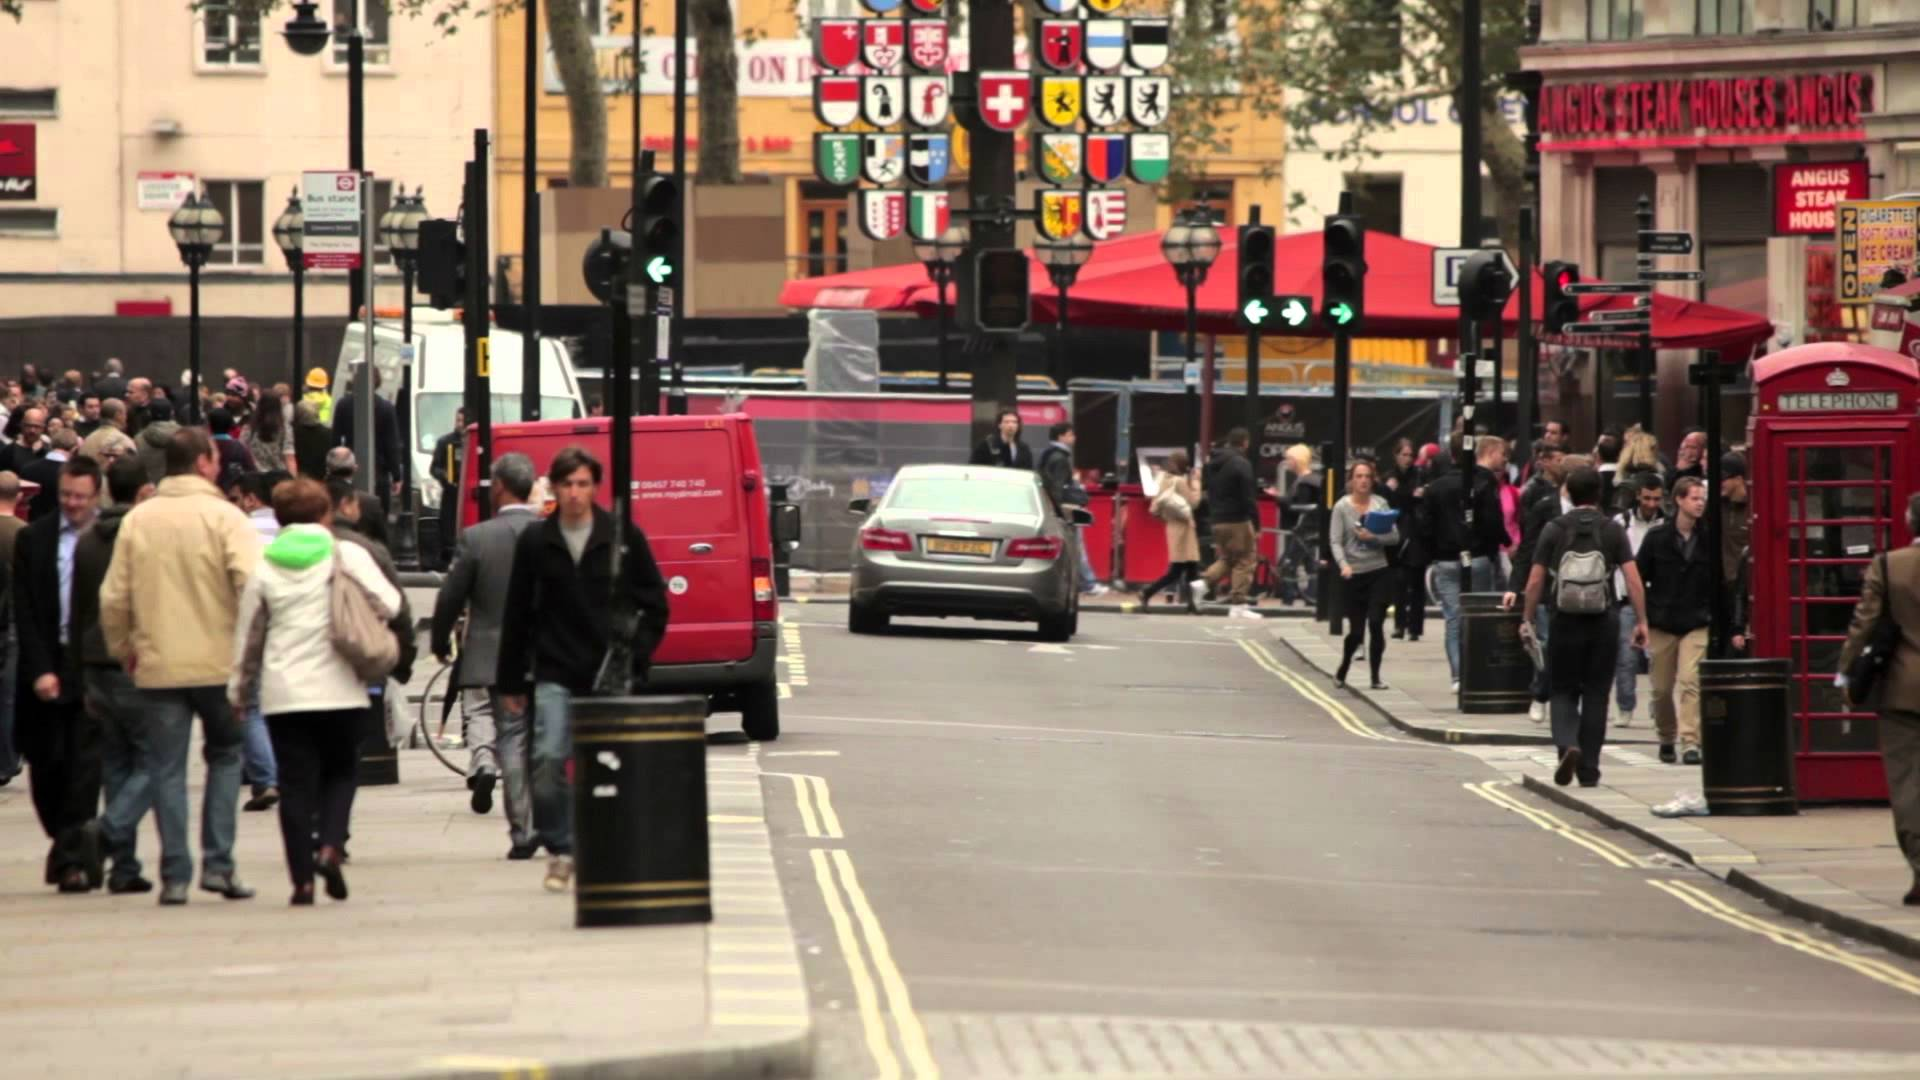 People and traffic on a busy street in London - YouTube